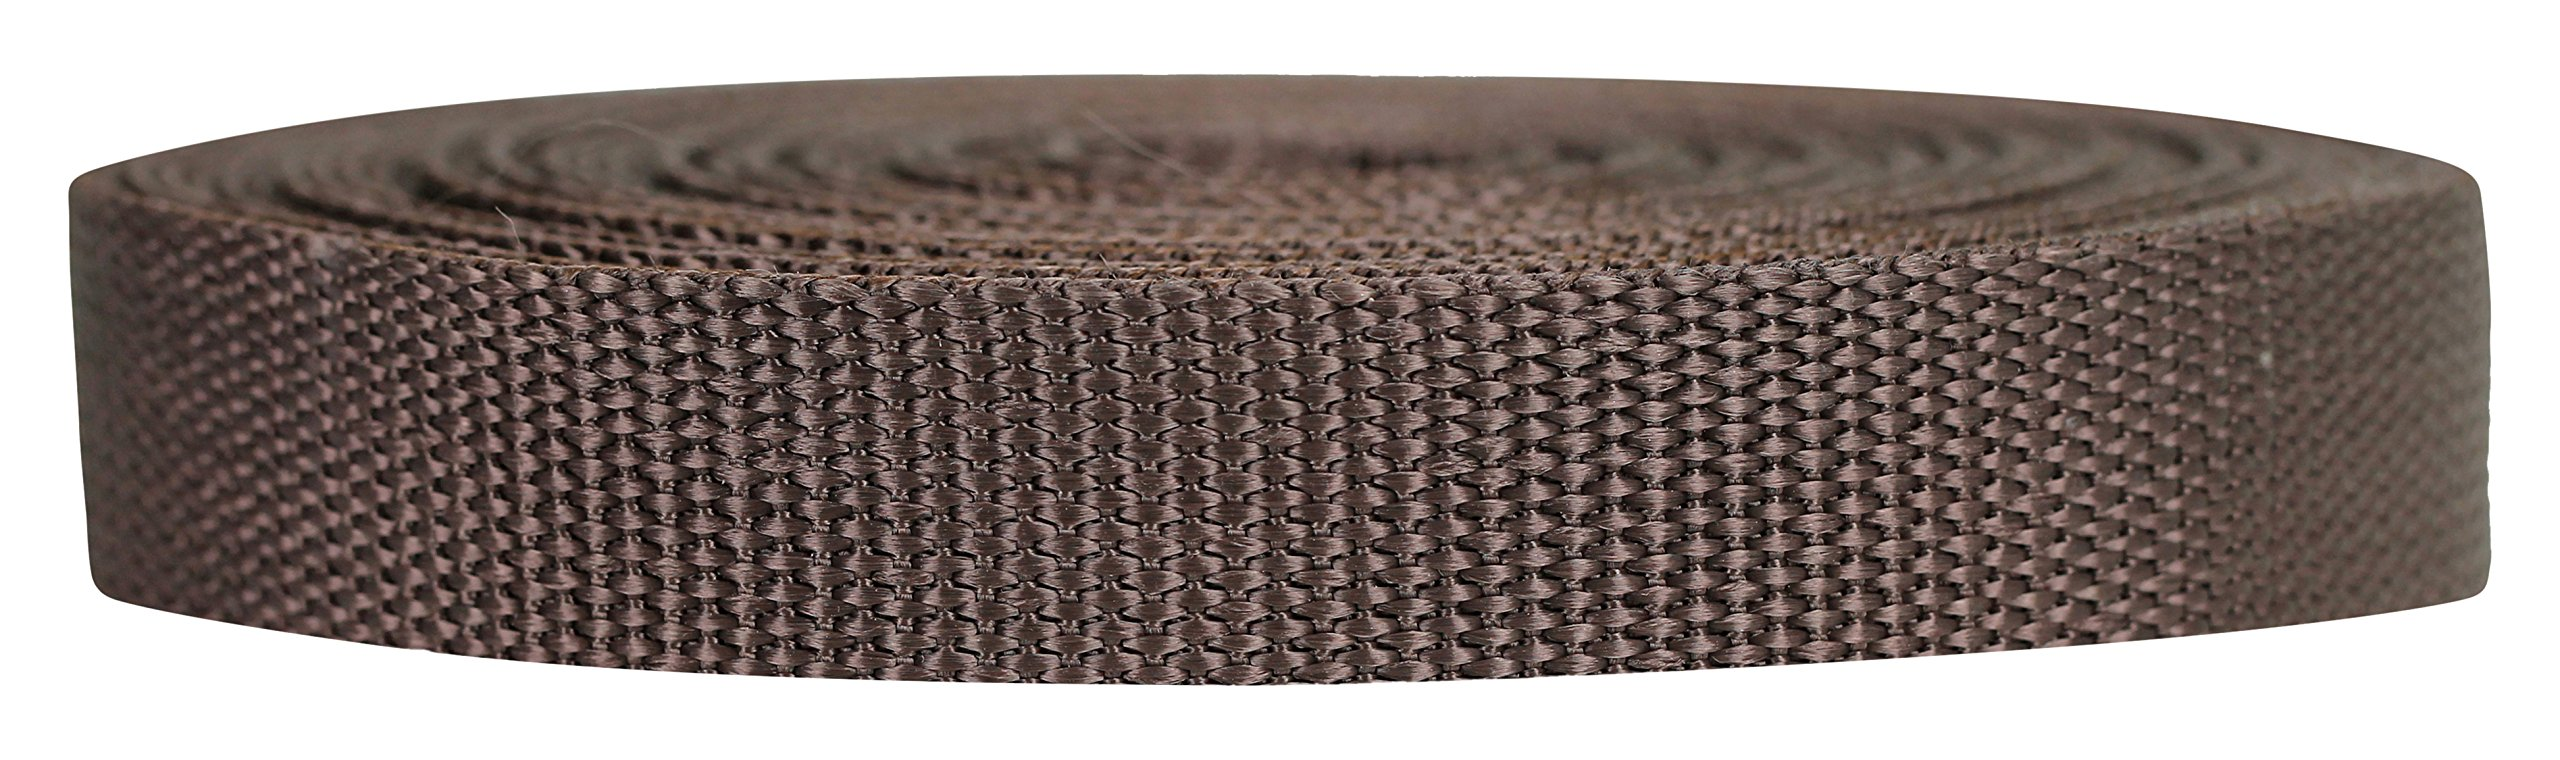 Strapworks Heavyweight Polypropylene Webbing - Heavy Duty Poly Strapping for Outdoor DIY Gear Repair, 3/4 Inch x 25 Yards, Brown by Strapworks